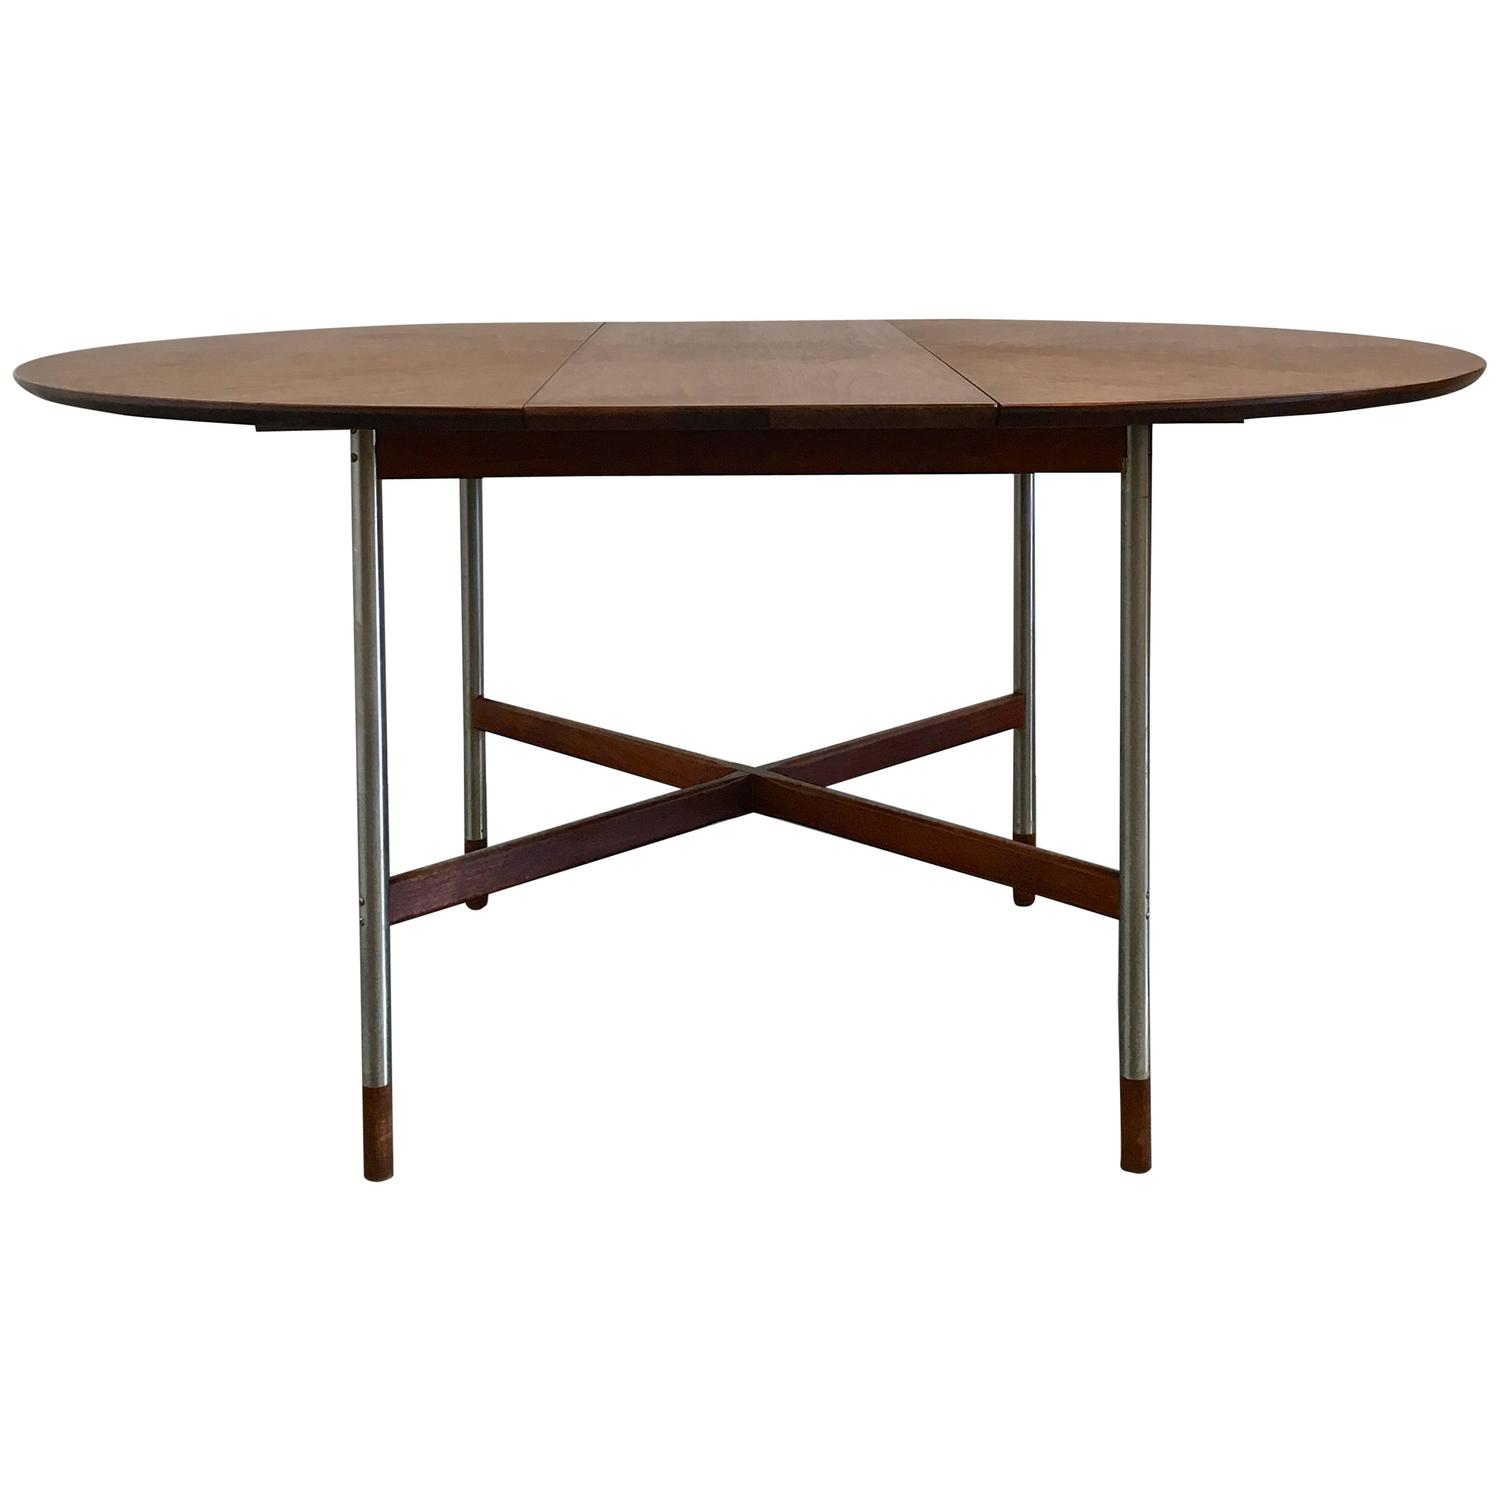 Arne Vodder Walnut Dining Table With Brushed Steel Legs For Sibast For Sale A